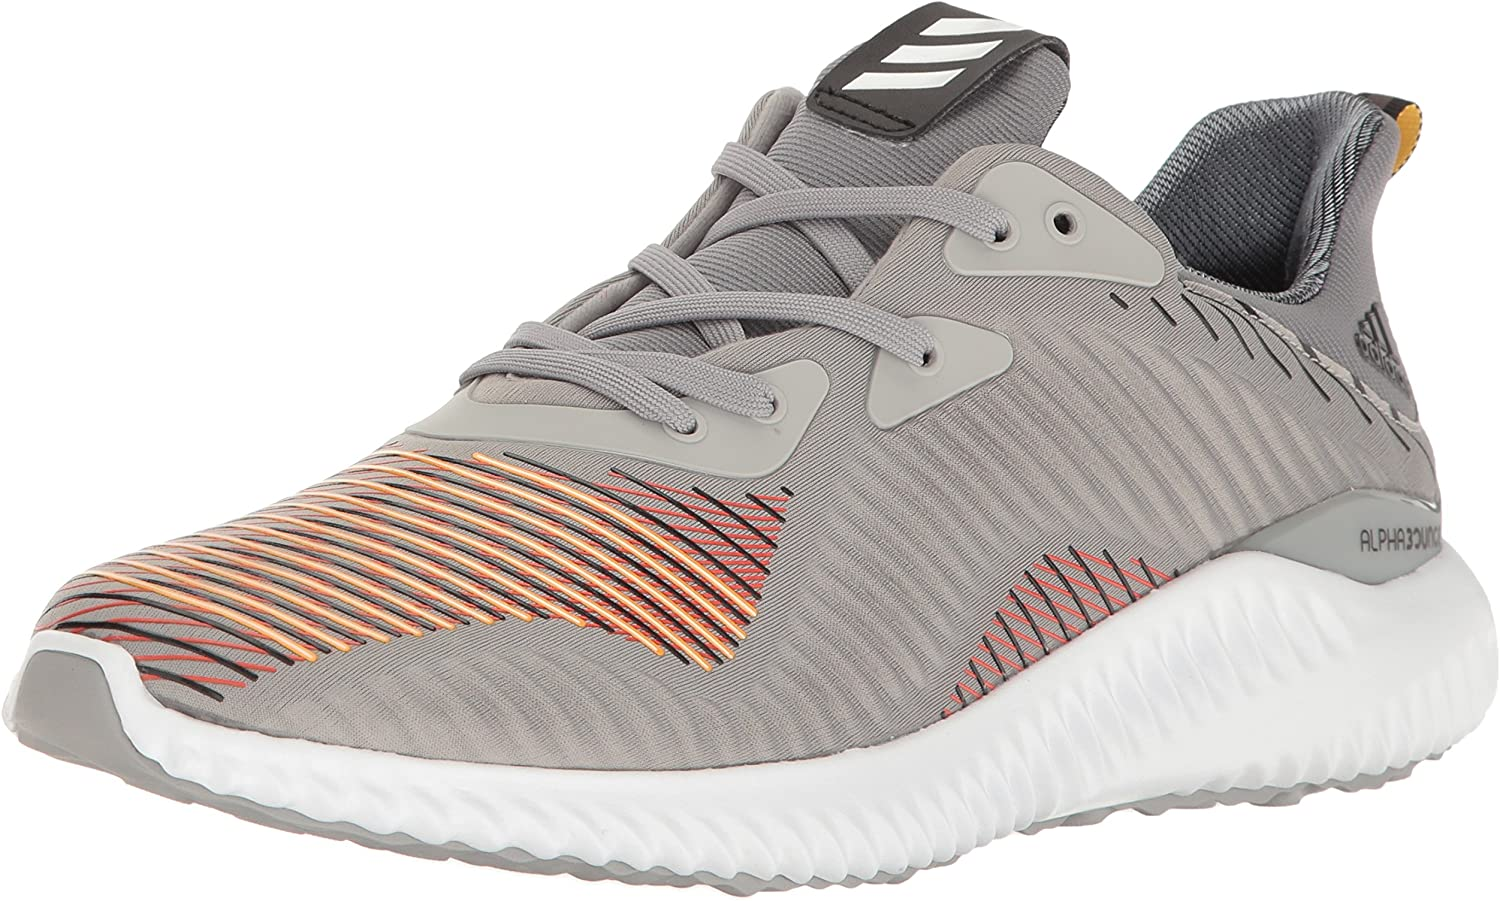 Adidas Performance Men's Alphabounce HPC m Running schuhe, Medium grau schwarz schwarz, 12 M US